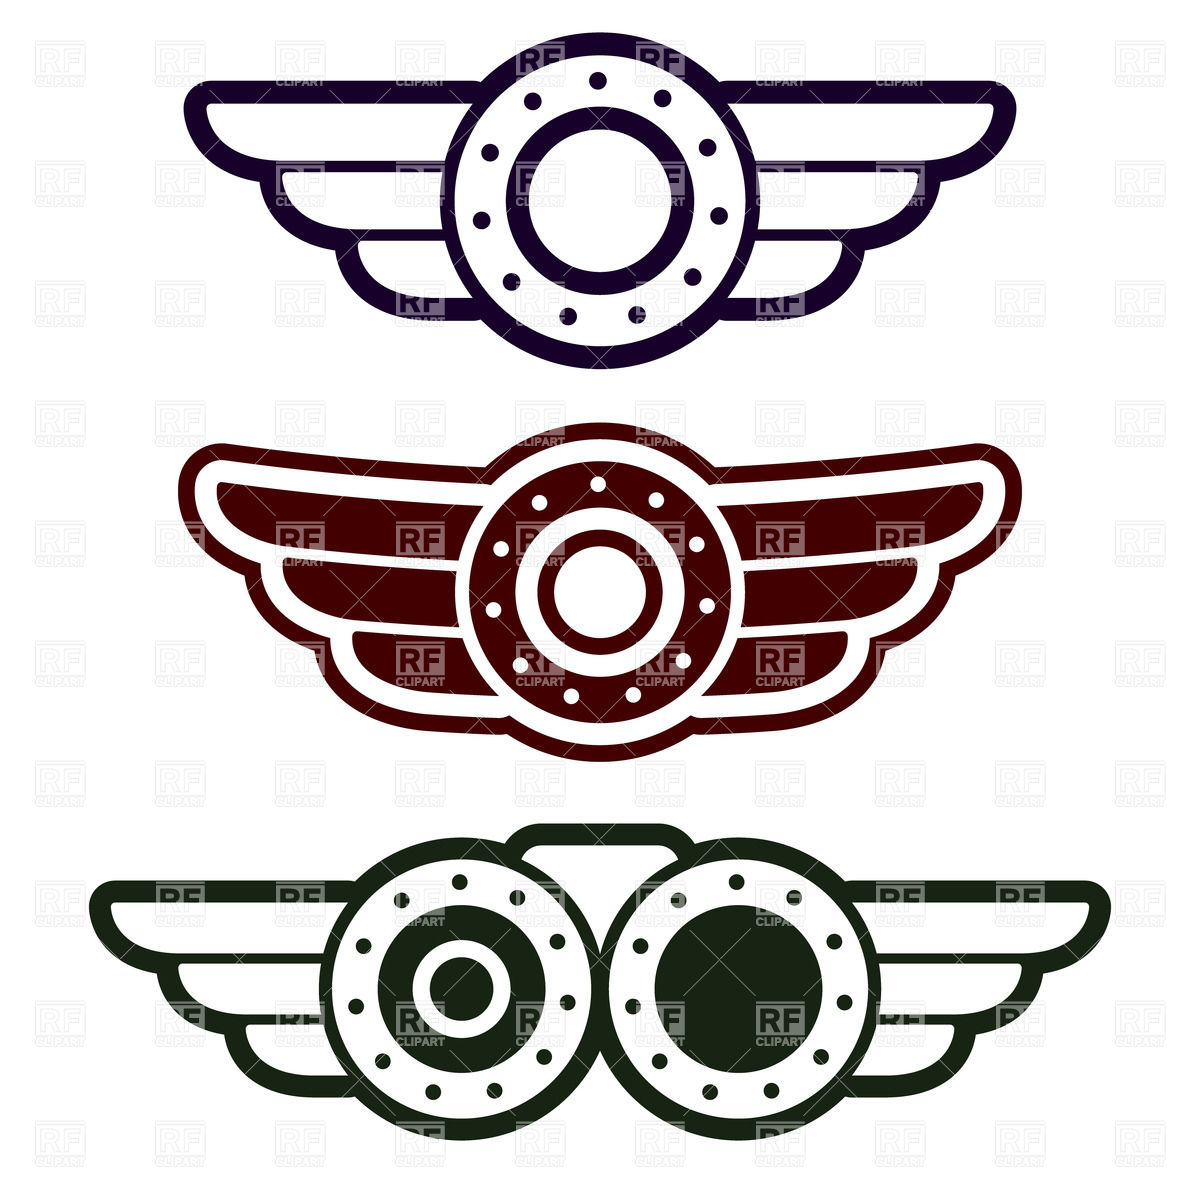 Flight wings clipart. Free pilot cliparts download